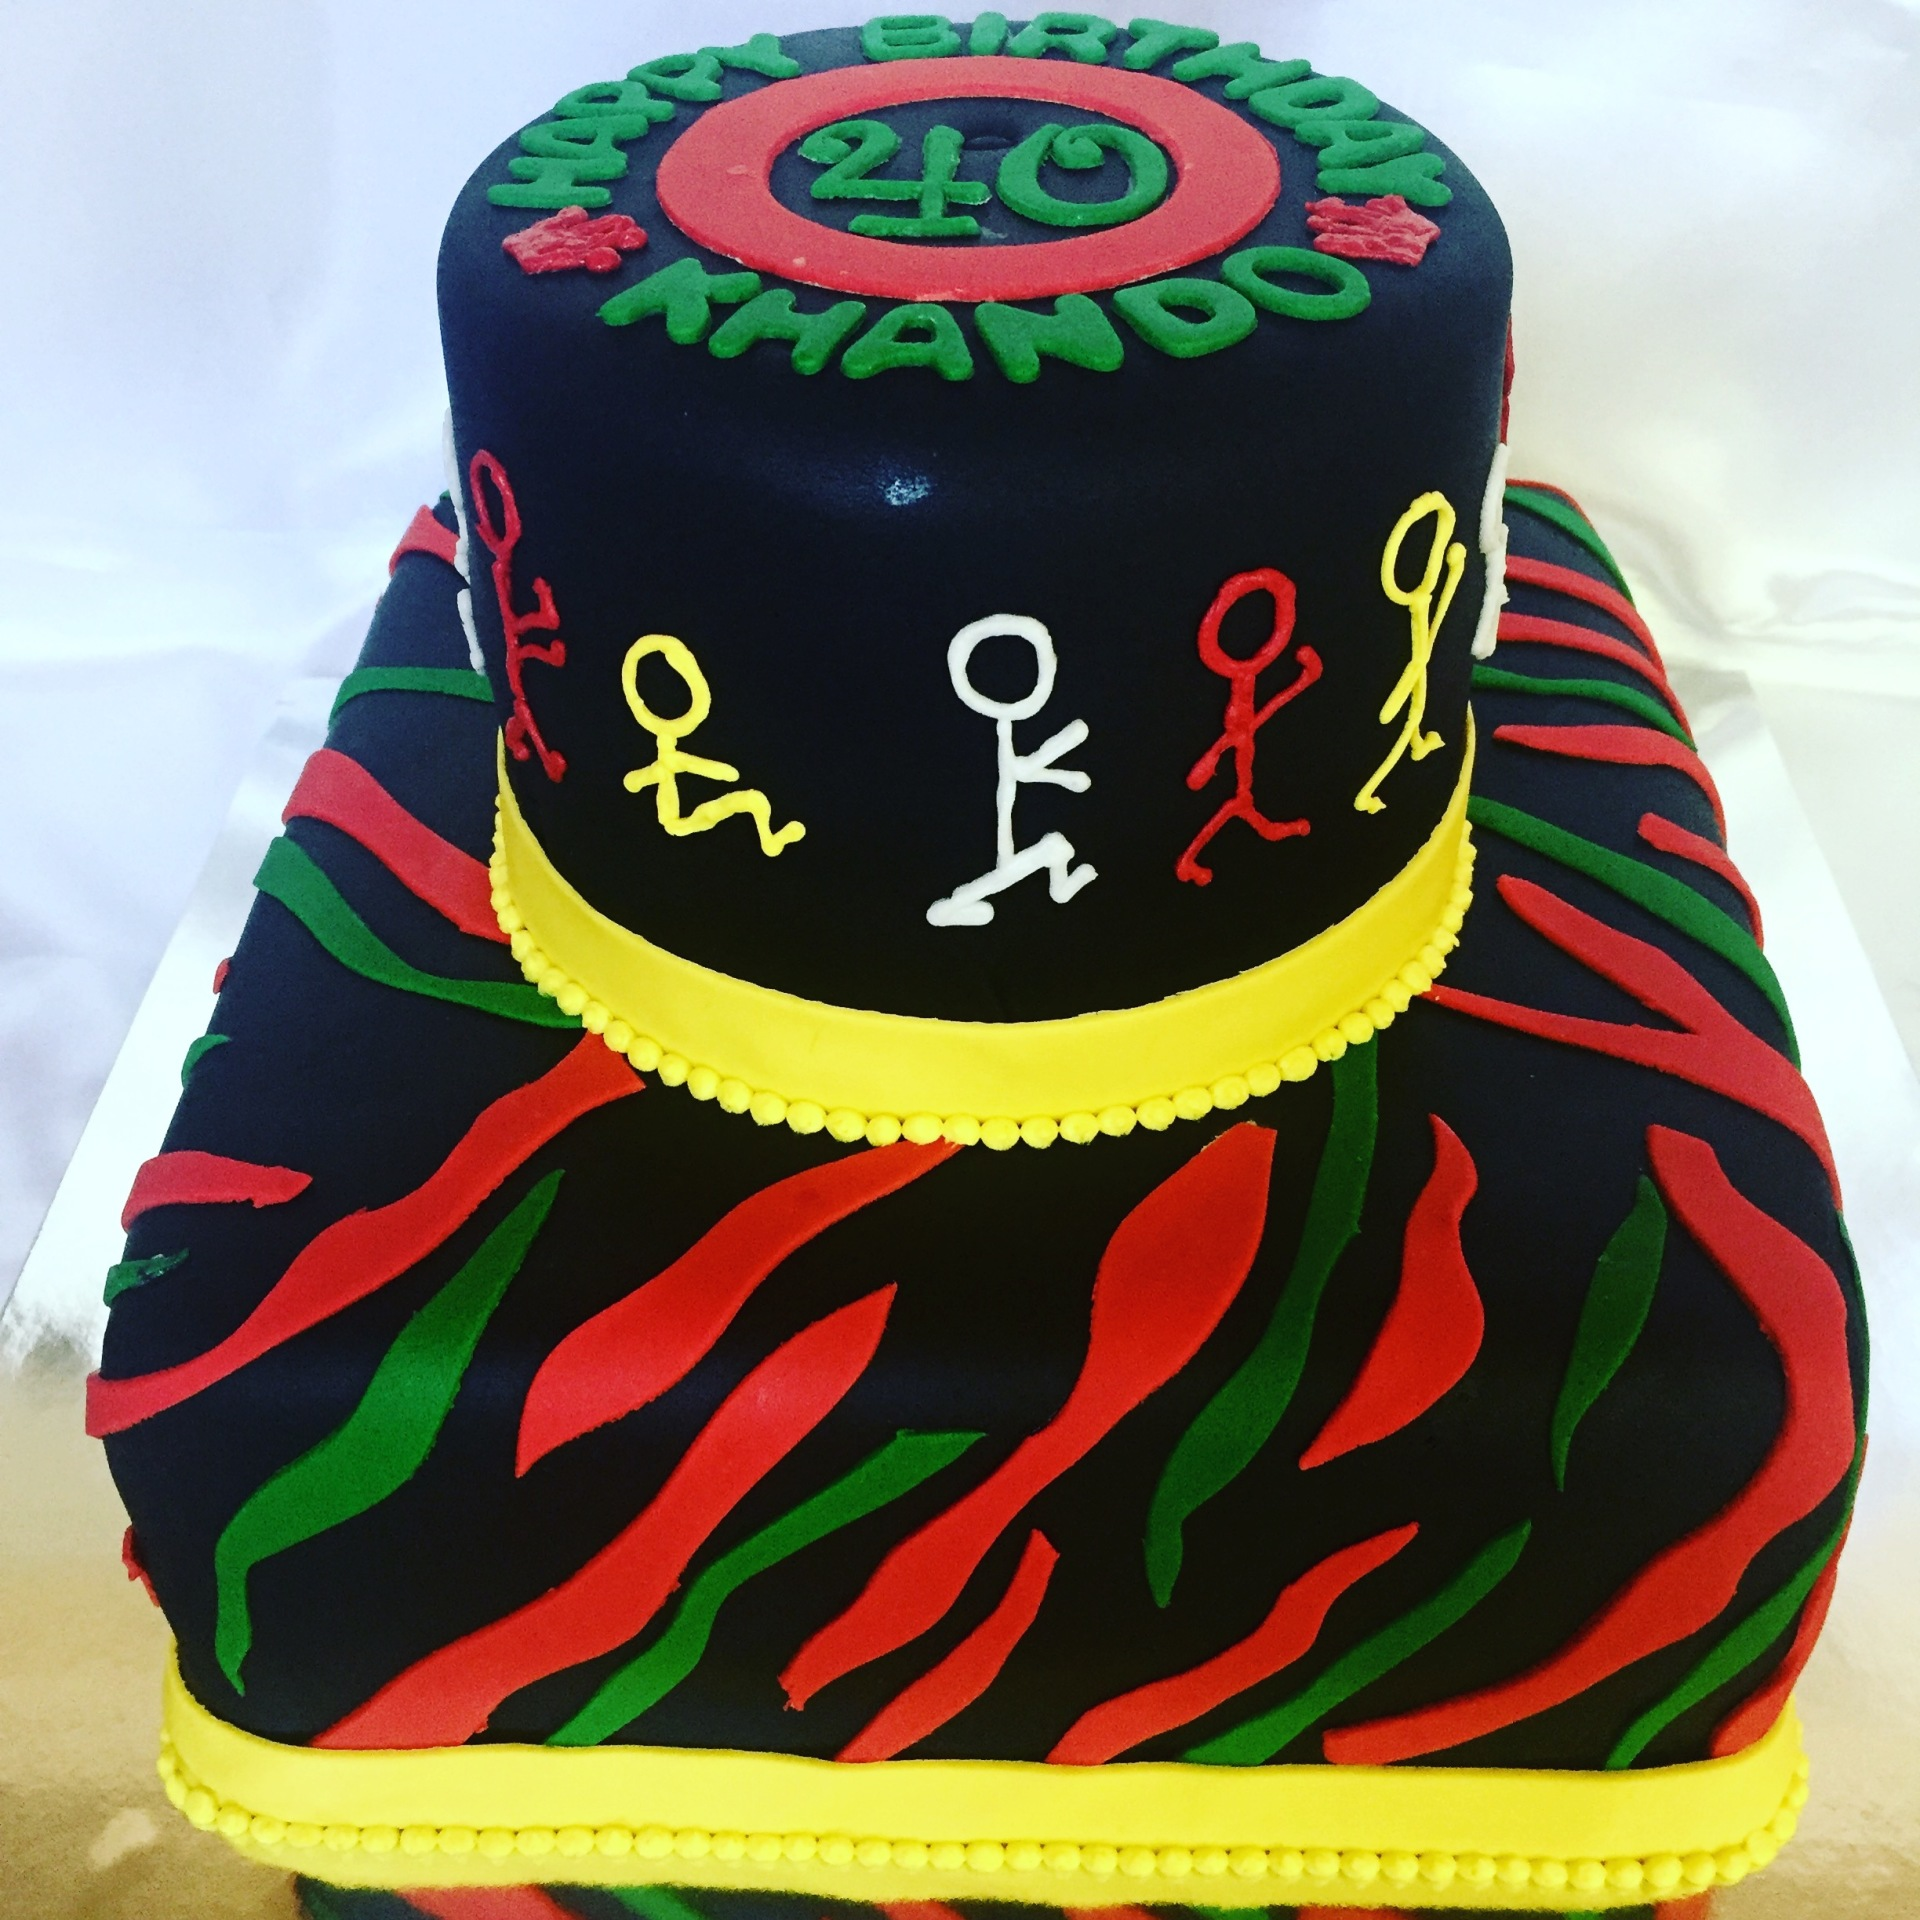 A Tribe called Quest fondant cake to match the decor